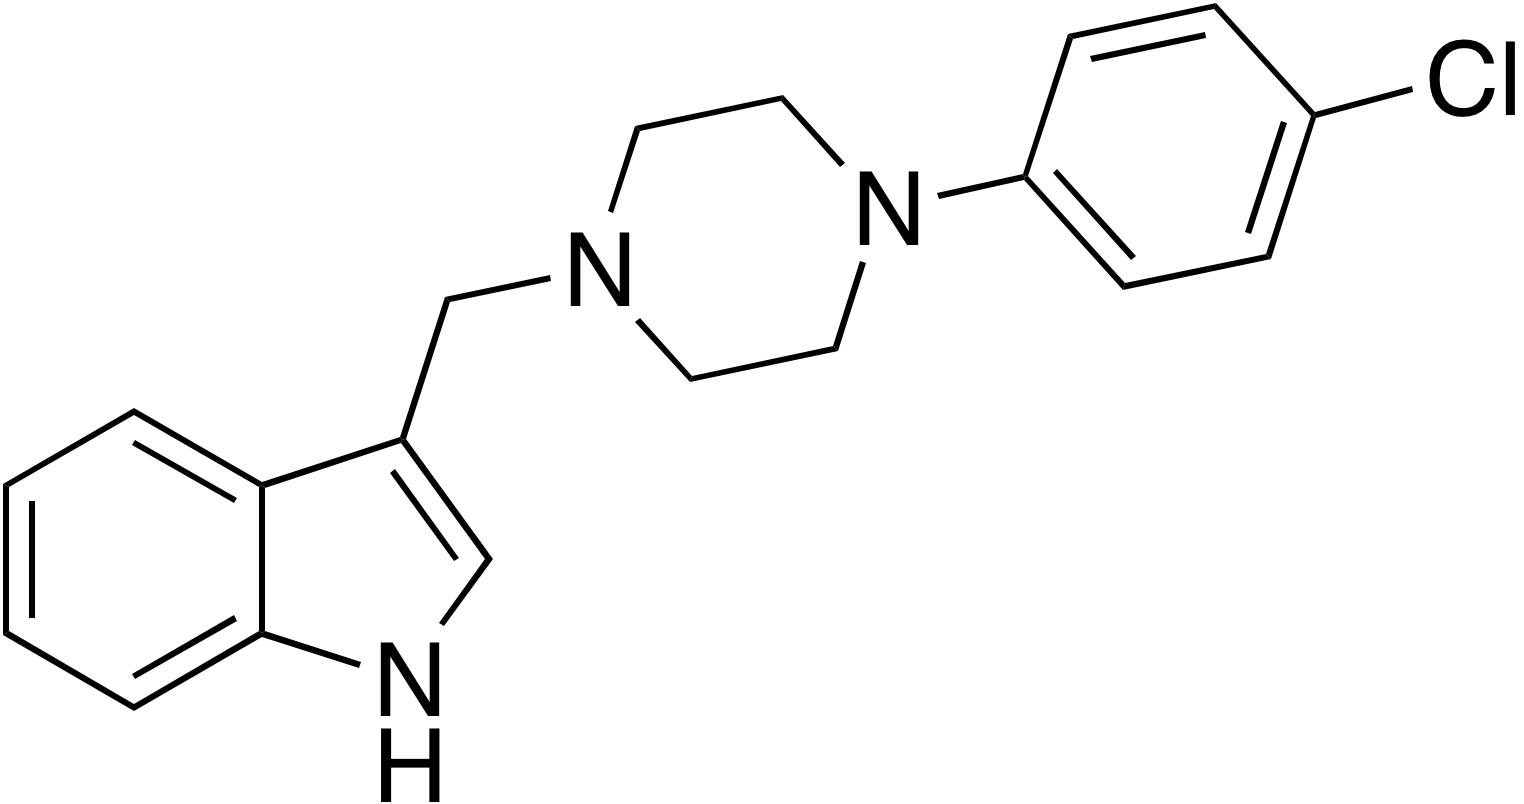 3-[4-(4-Chlorophenyl)piperazin-1-ylmethyl]-1H-indole